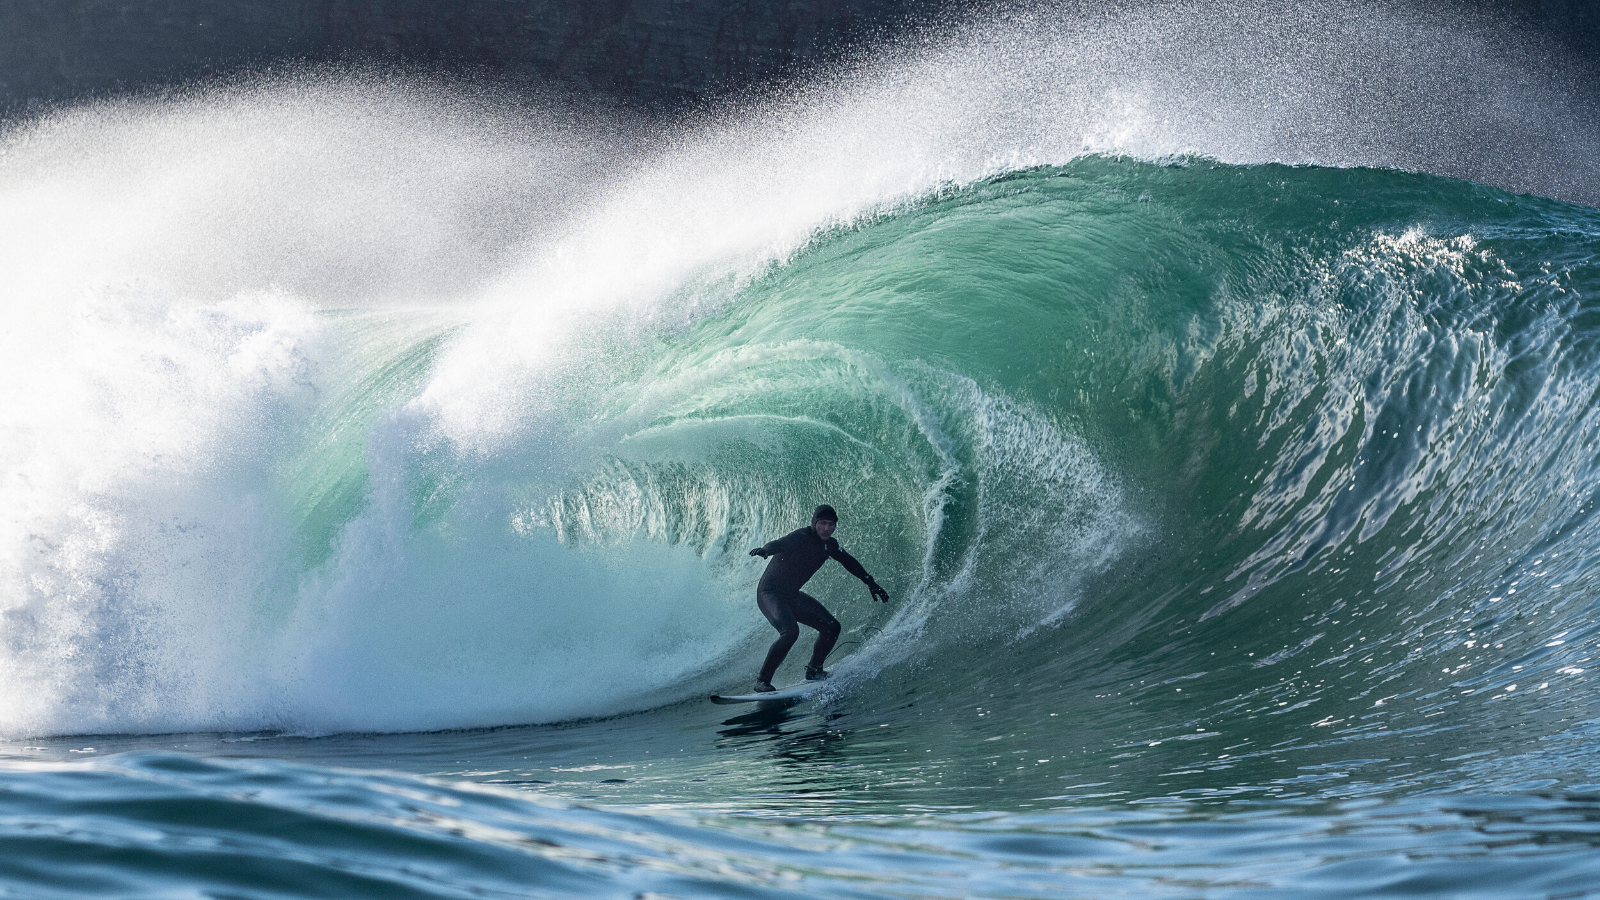 surfing staycations ireland, Staycations for Surfing and Watersports in Ireland this Summer